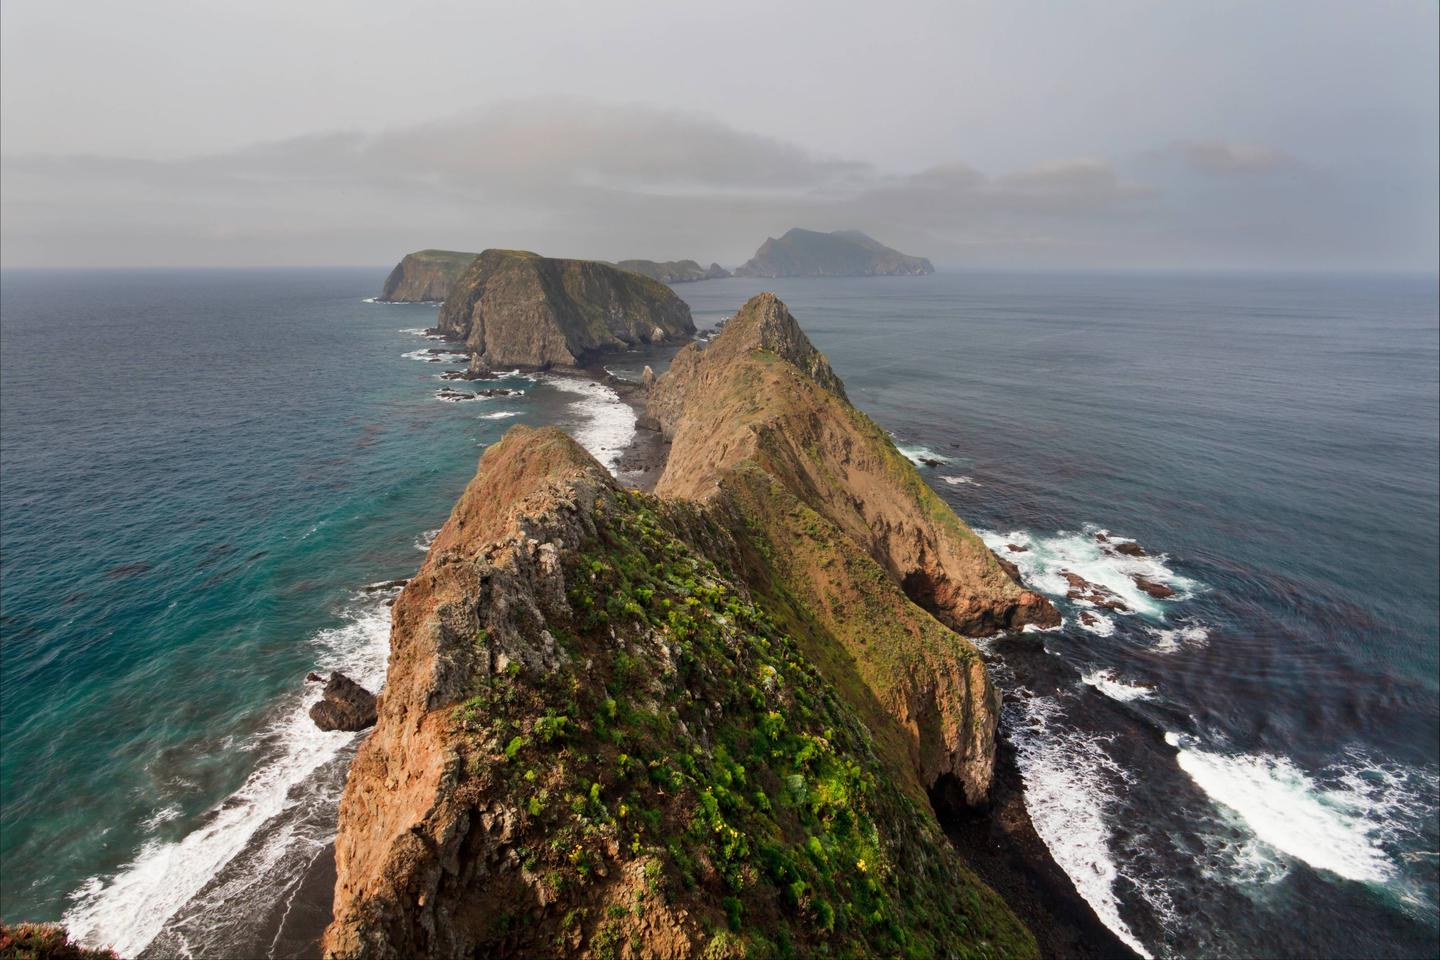 Inspiration Point by Tim HaufInspiration Point, Anacapa Island: One of the most spectacular views in the park can be found from Inspiration Point. Looking to the west, one may see Middle and West Anacapa, with Santa Cruz Island in the distance.